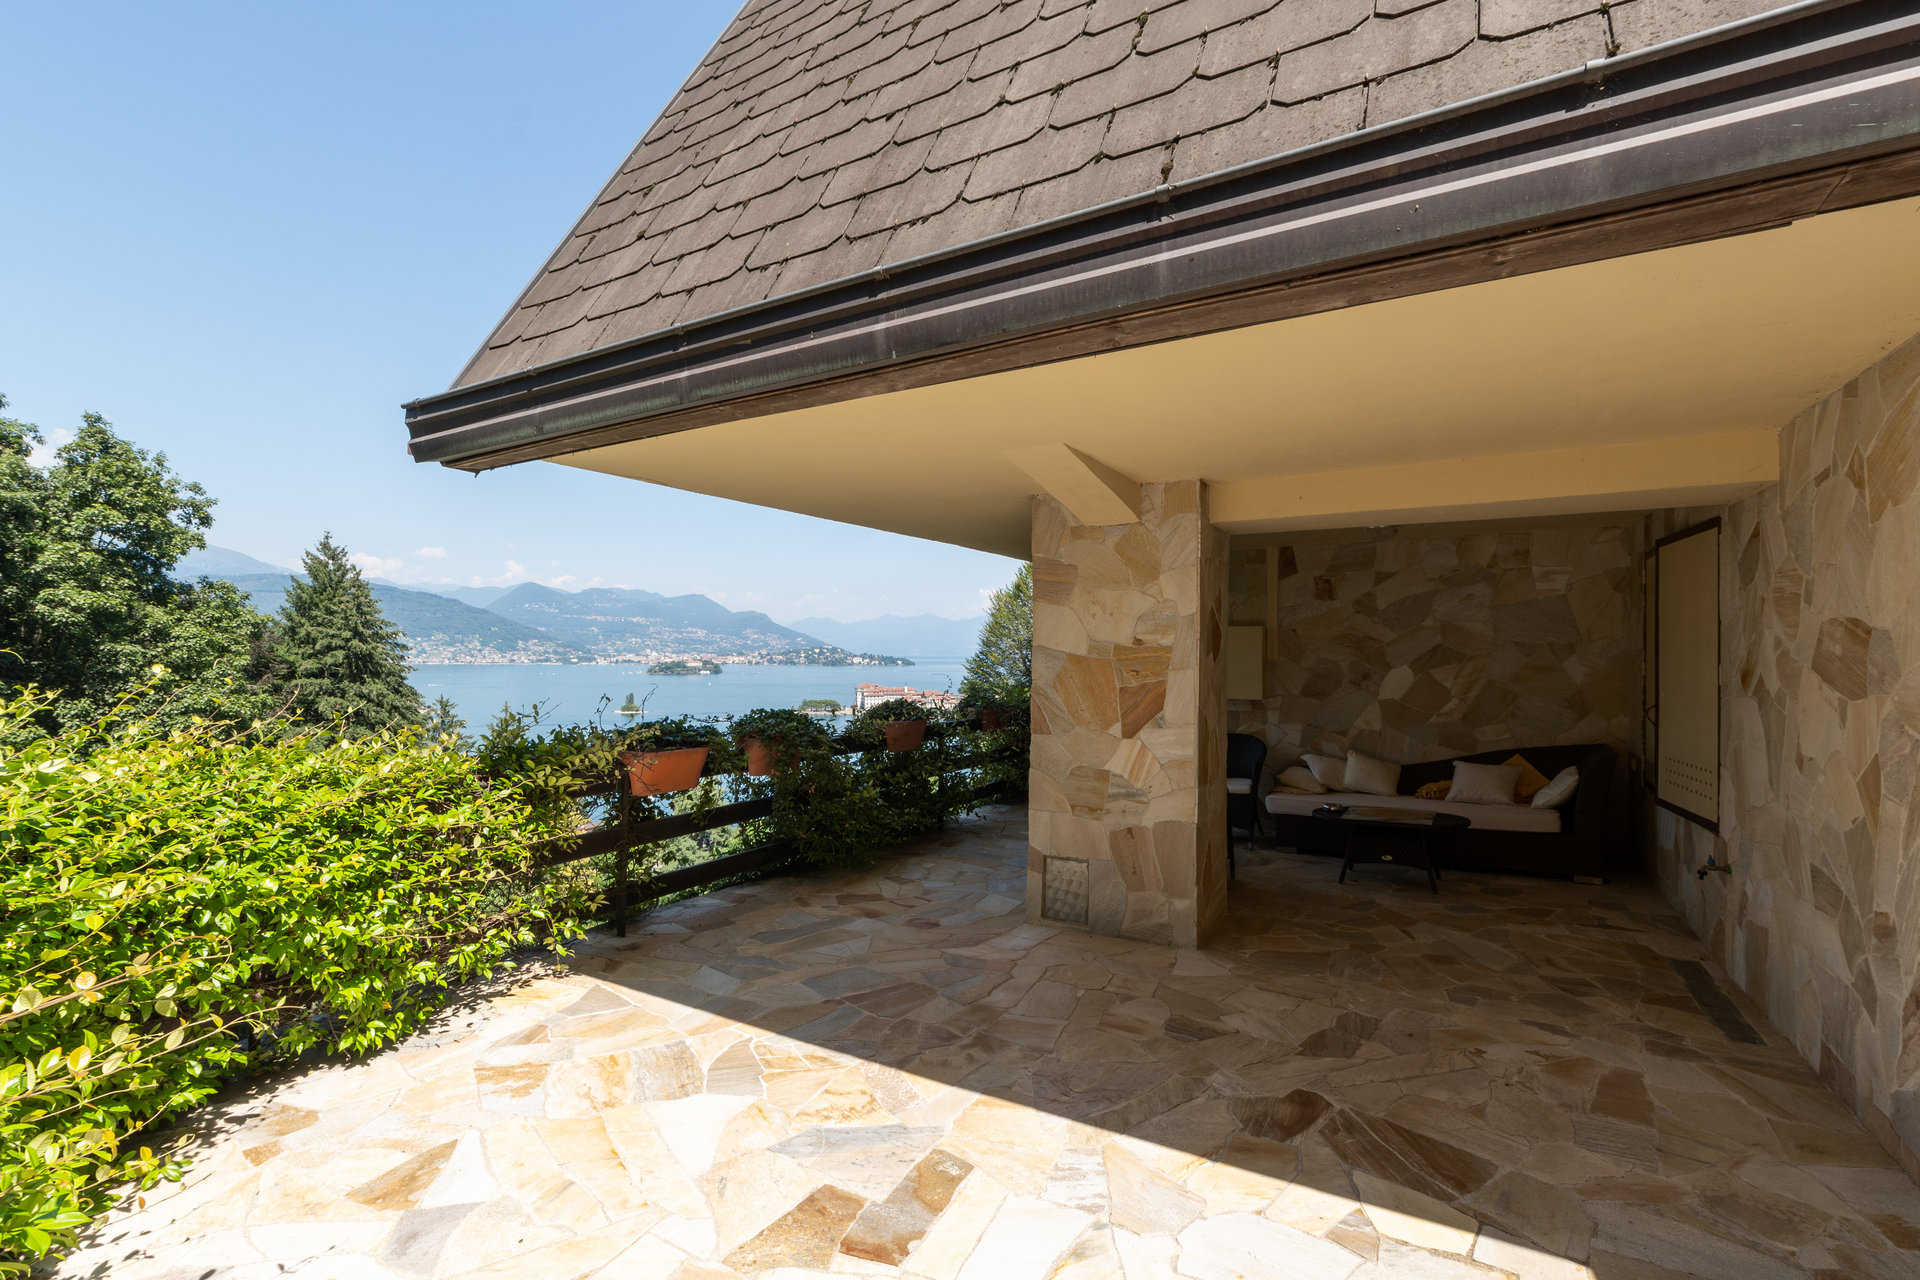 Villa for sale in Stresa with park and views over the Borromean Gulf